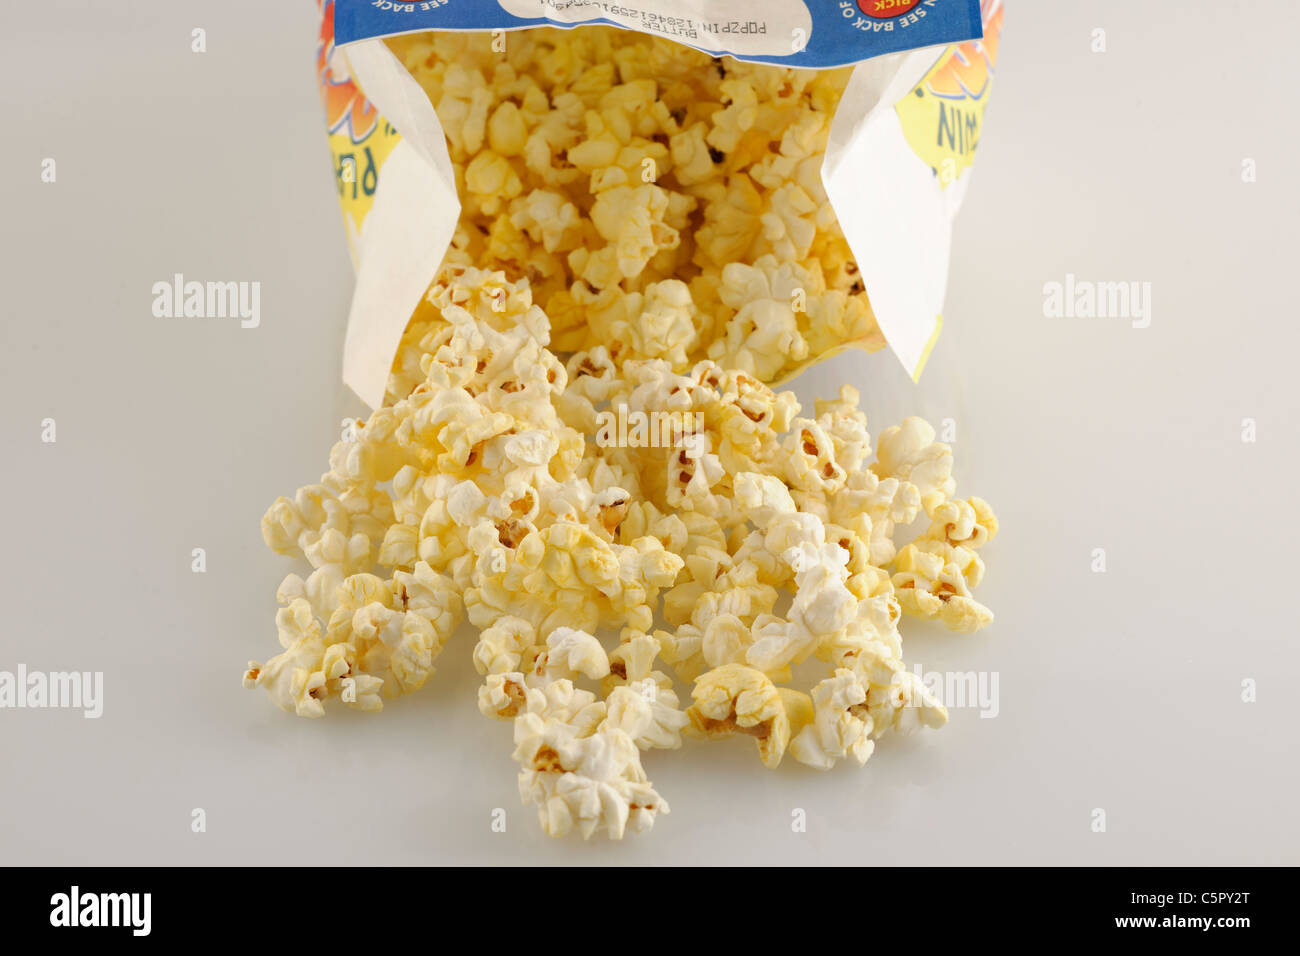 Pile of freshly microwaved butter microwave popcorn. - Stock Image